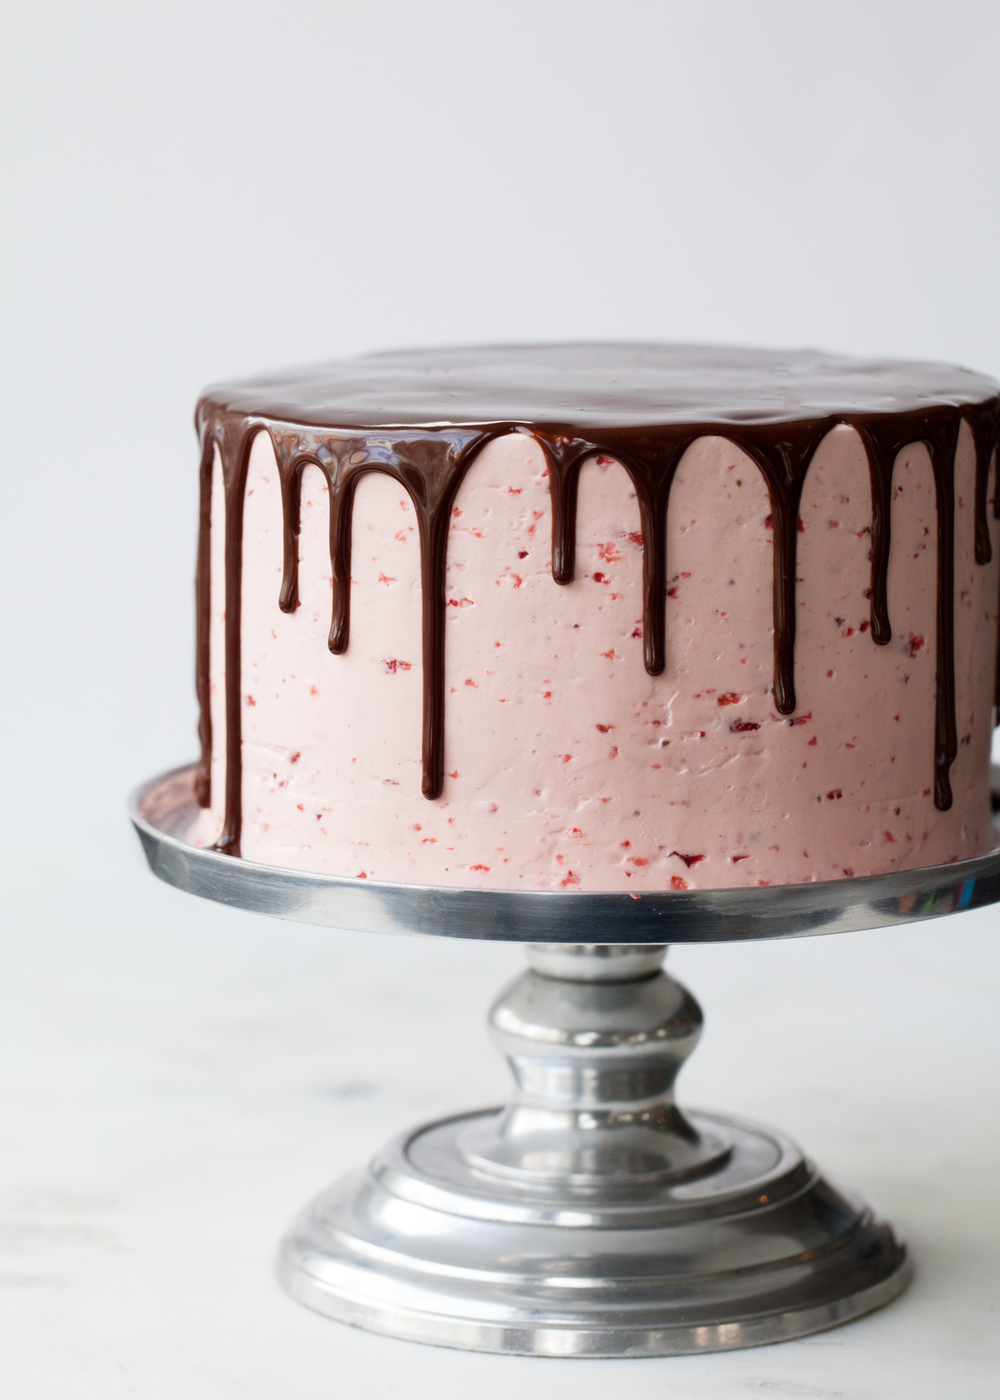 Cake With Chocolate Dripping : Chocolate Dipped Strawberry Cake + my best tips for drippy ...